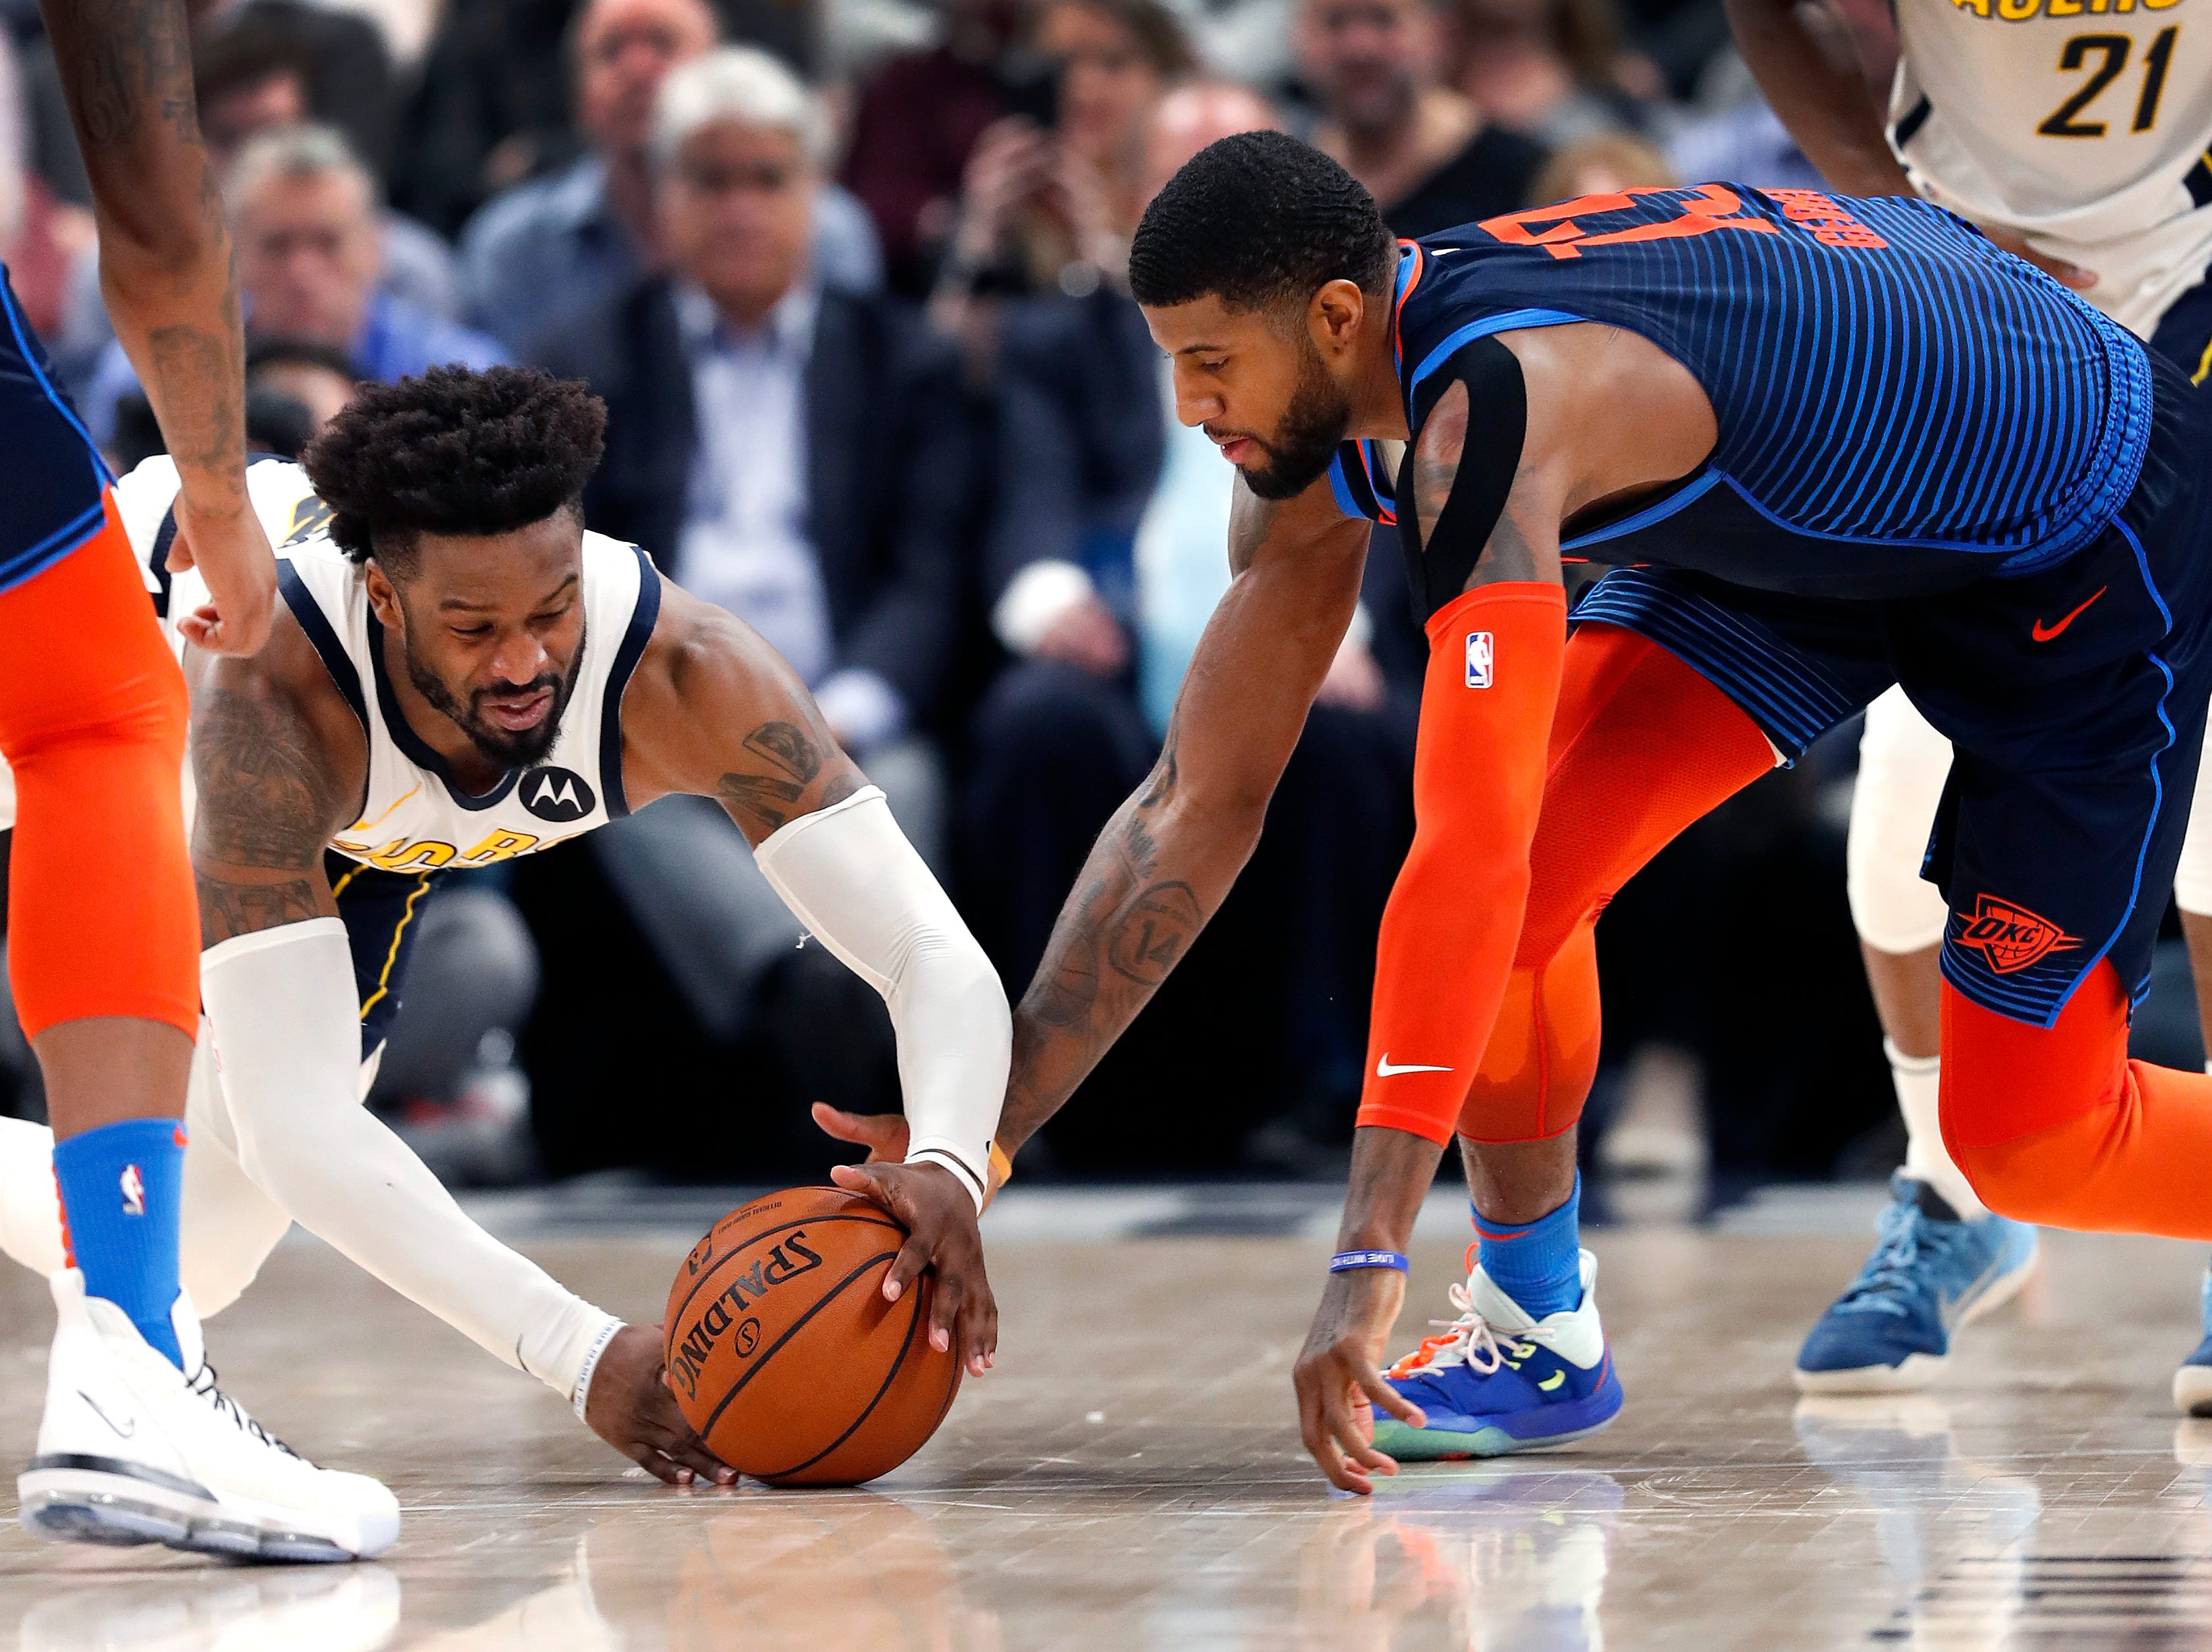 Indiana Pacers guard Wesley Matthews (23) and Oklahoma City Thunder forward Paul George (13) scramble for loose ball in the second half of their game at Bankers Life Fieldhouse on Thursday, Mar. 14, 2019. The Pacers defeated the Thunder 108-106.